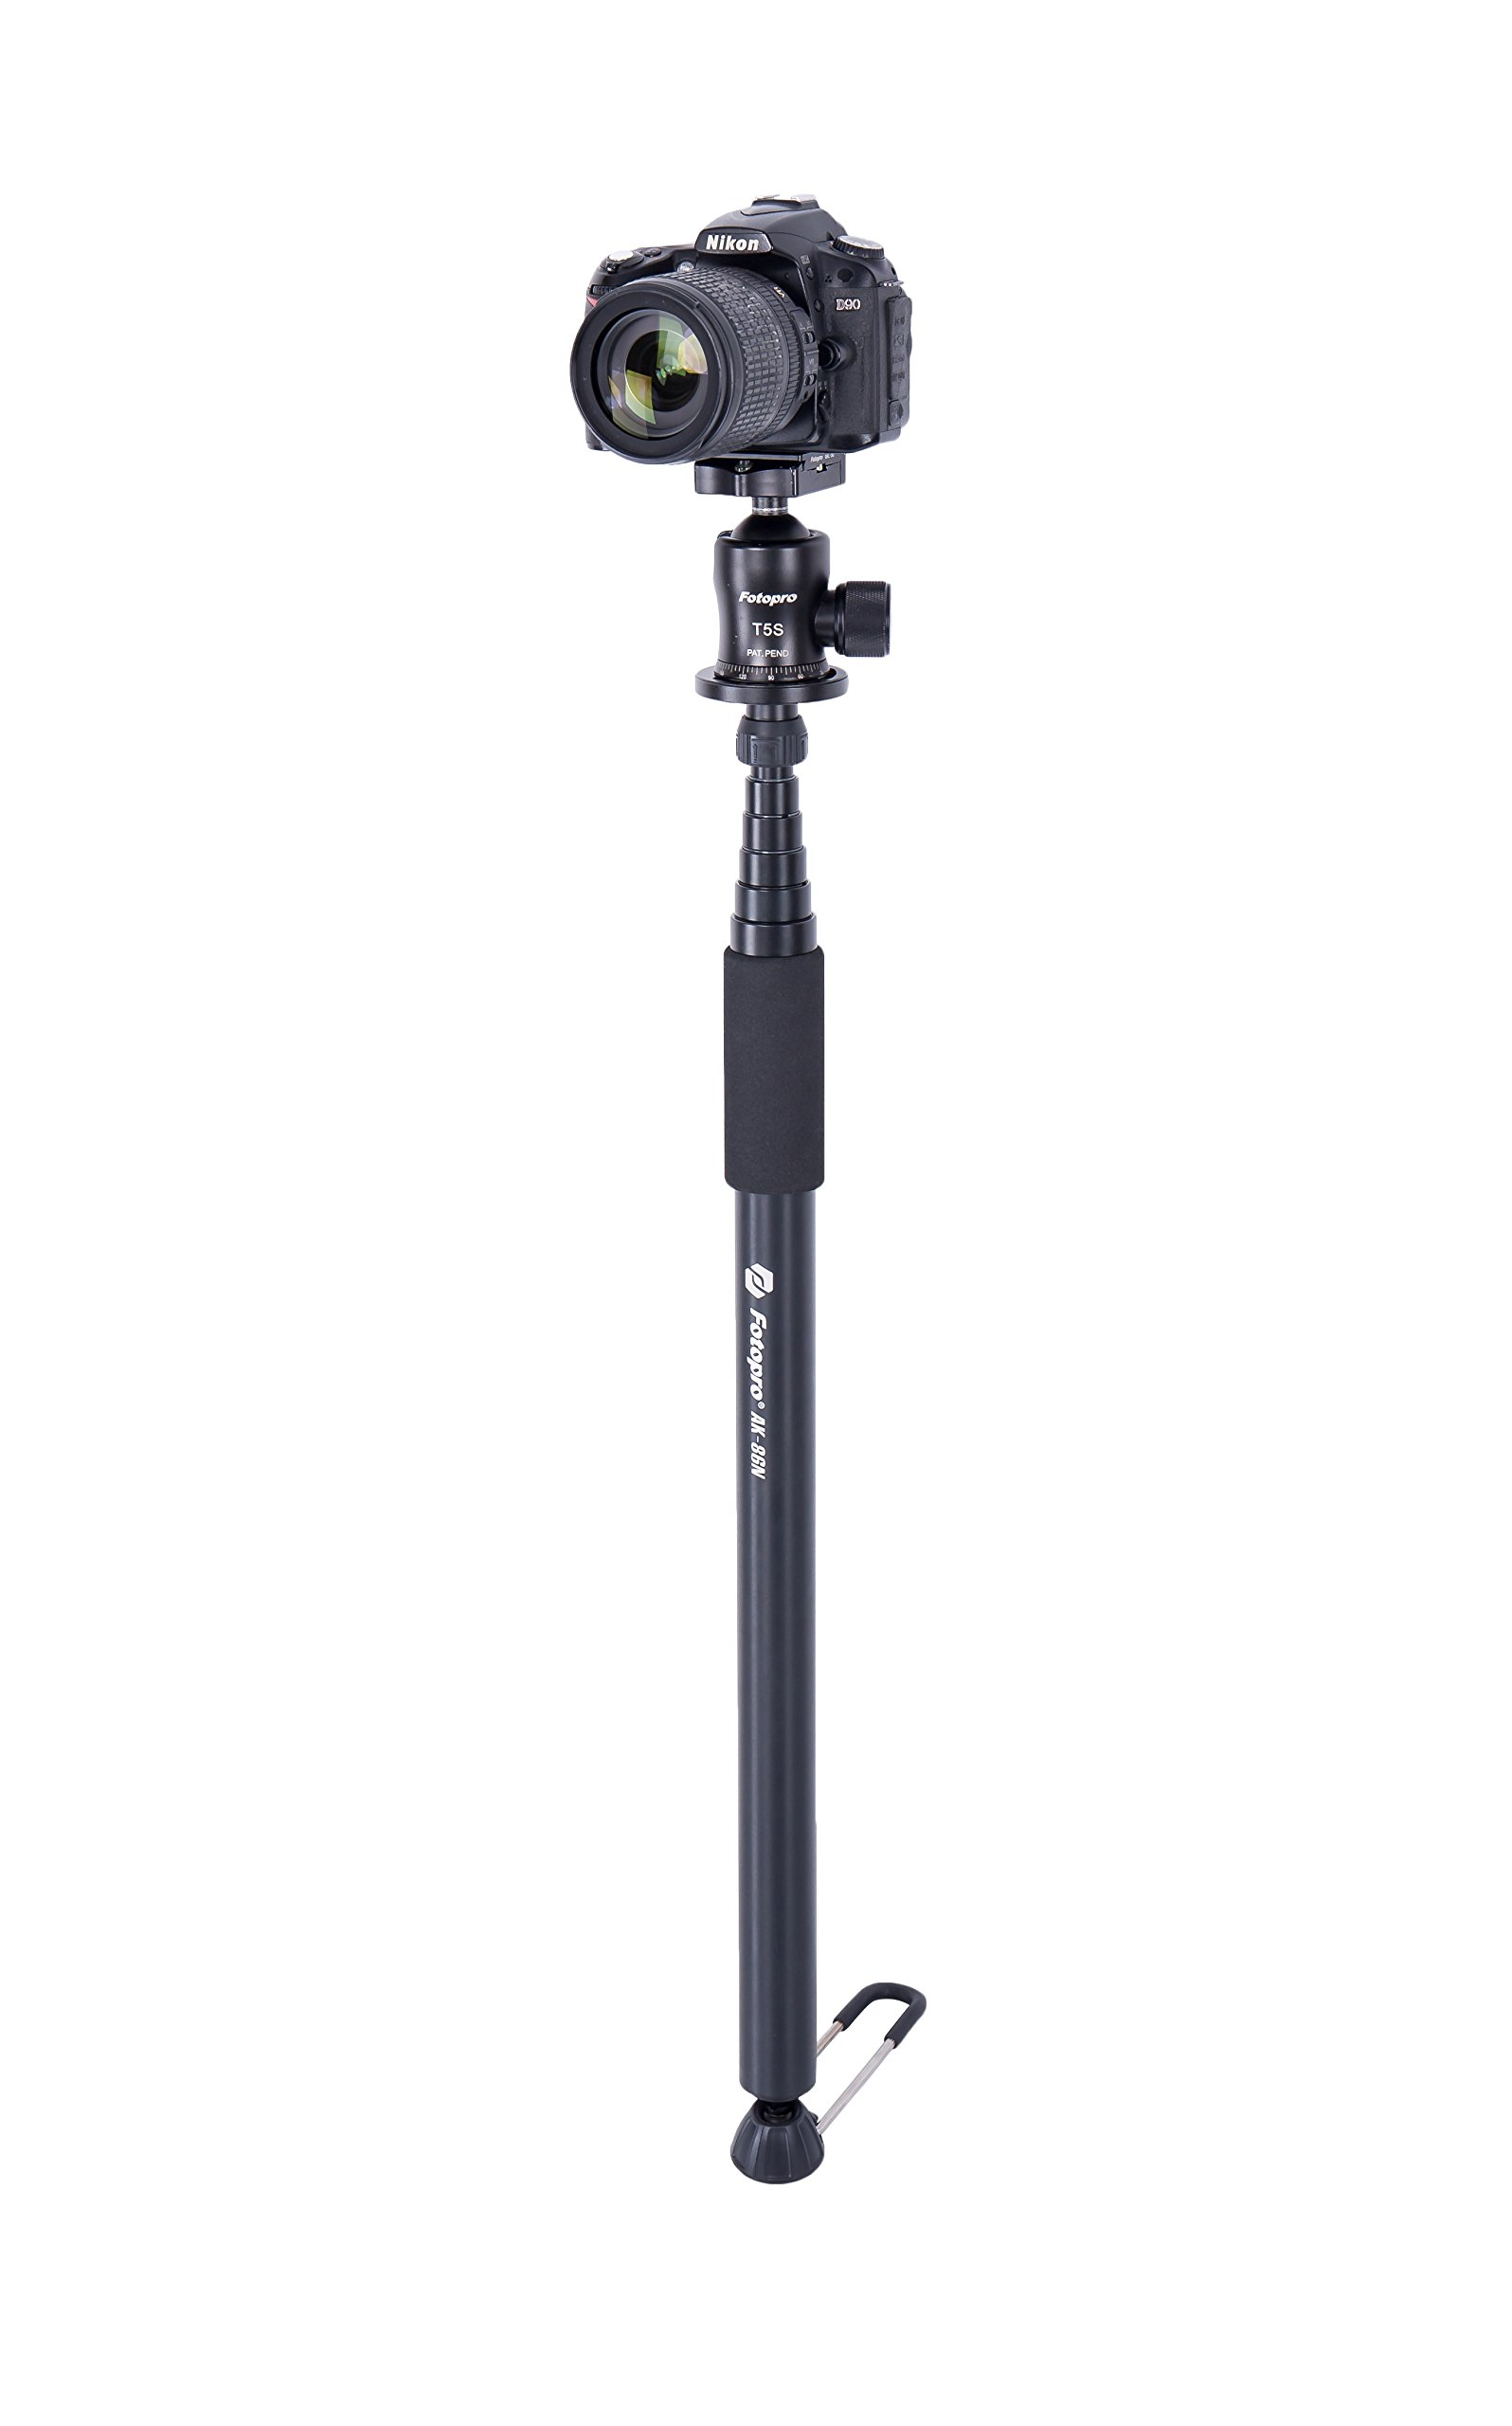 Fotopro AK-86N 111-Inch Aluminum Lightweight Ispeedy Monopod w/ Detachable Platform and Rubber Feet (Fits for 1/4''-20 and 3/8''-16 conversion Screw) by Fotopro (Image #2)